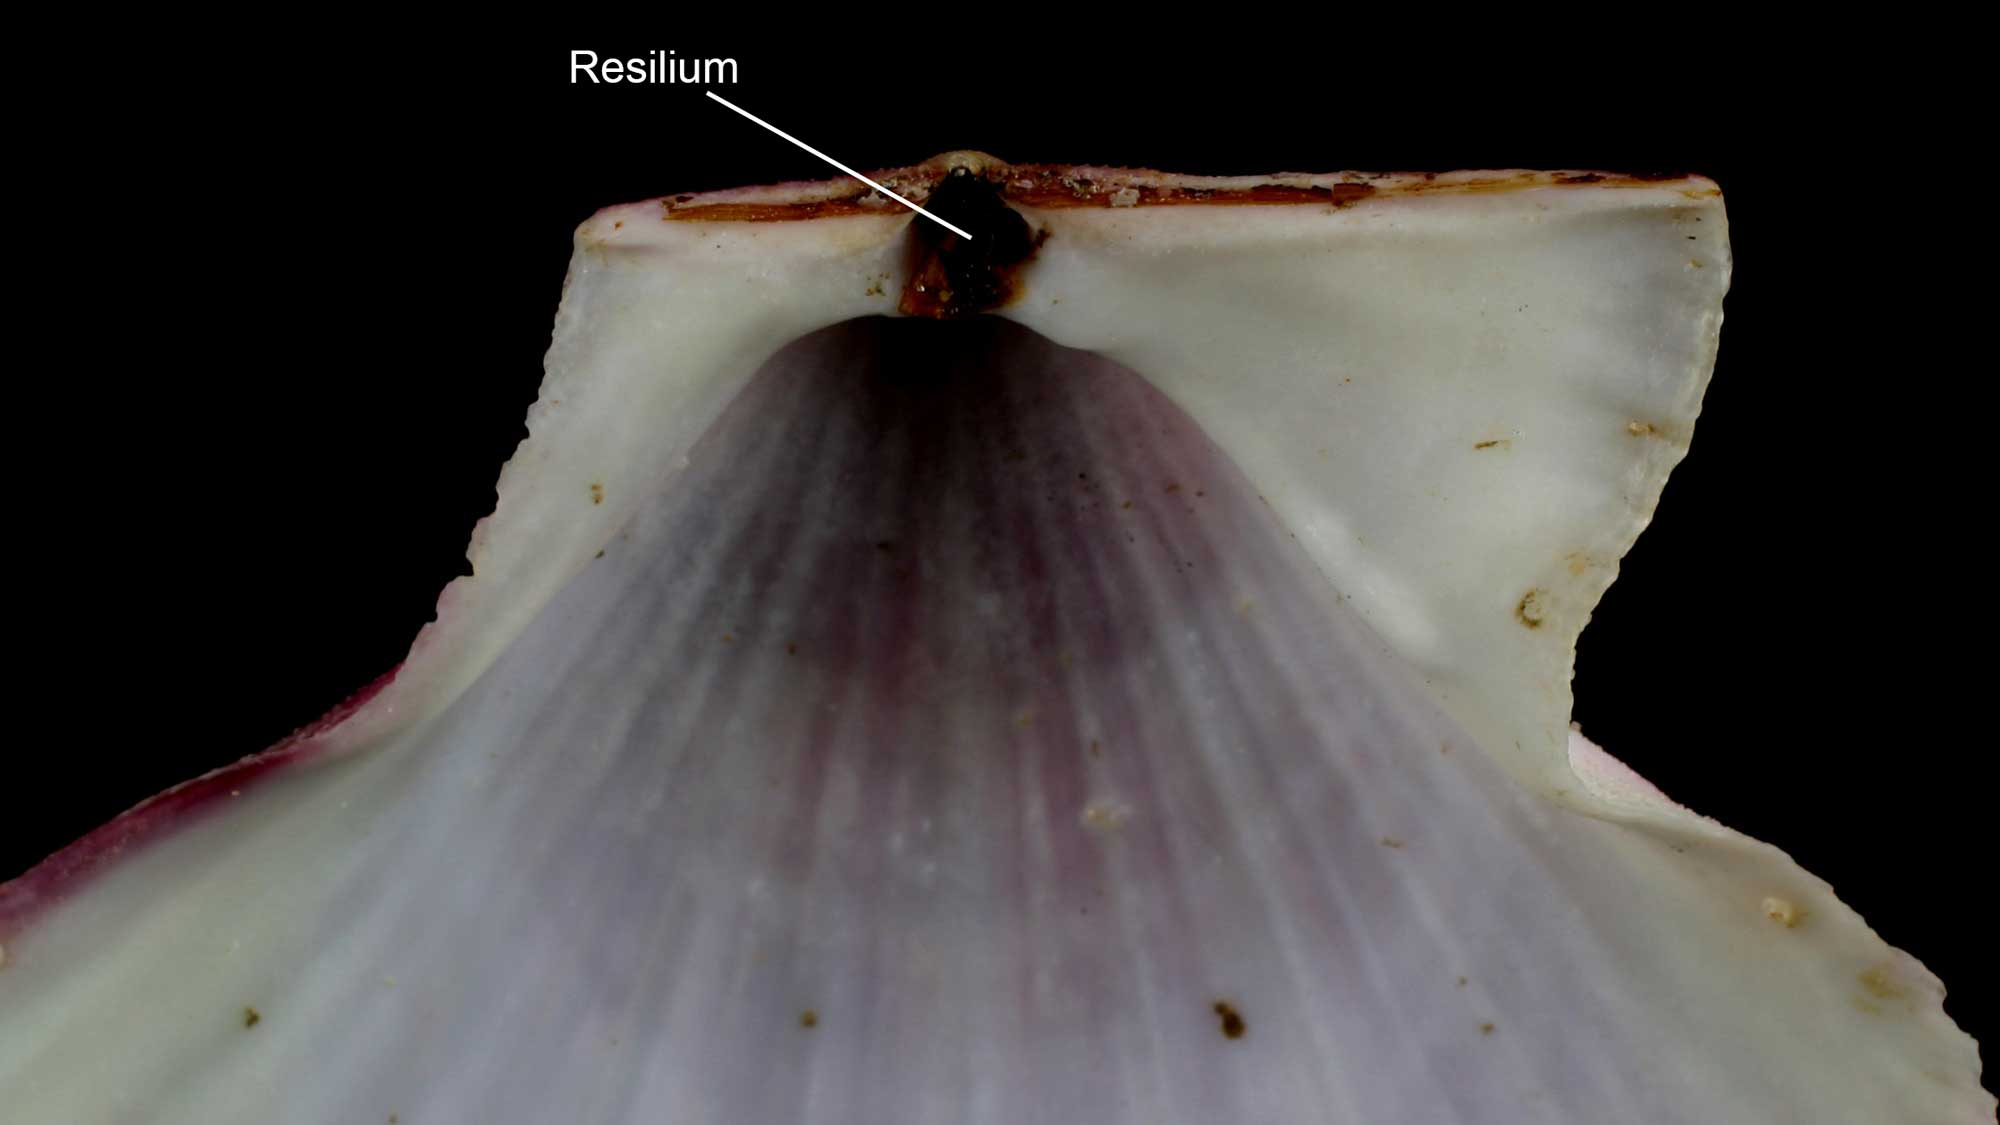 Photograph of a scallop shell with the resilium labeled.